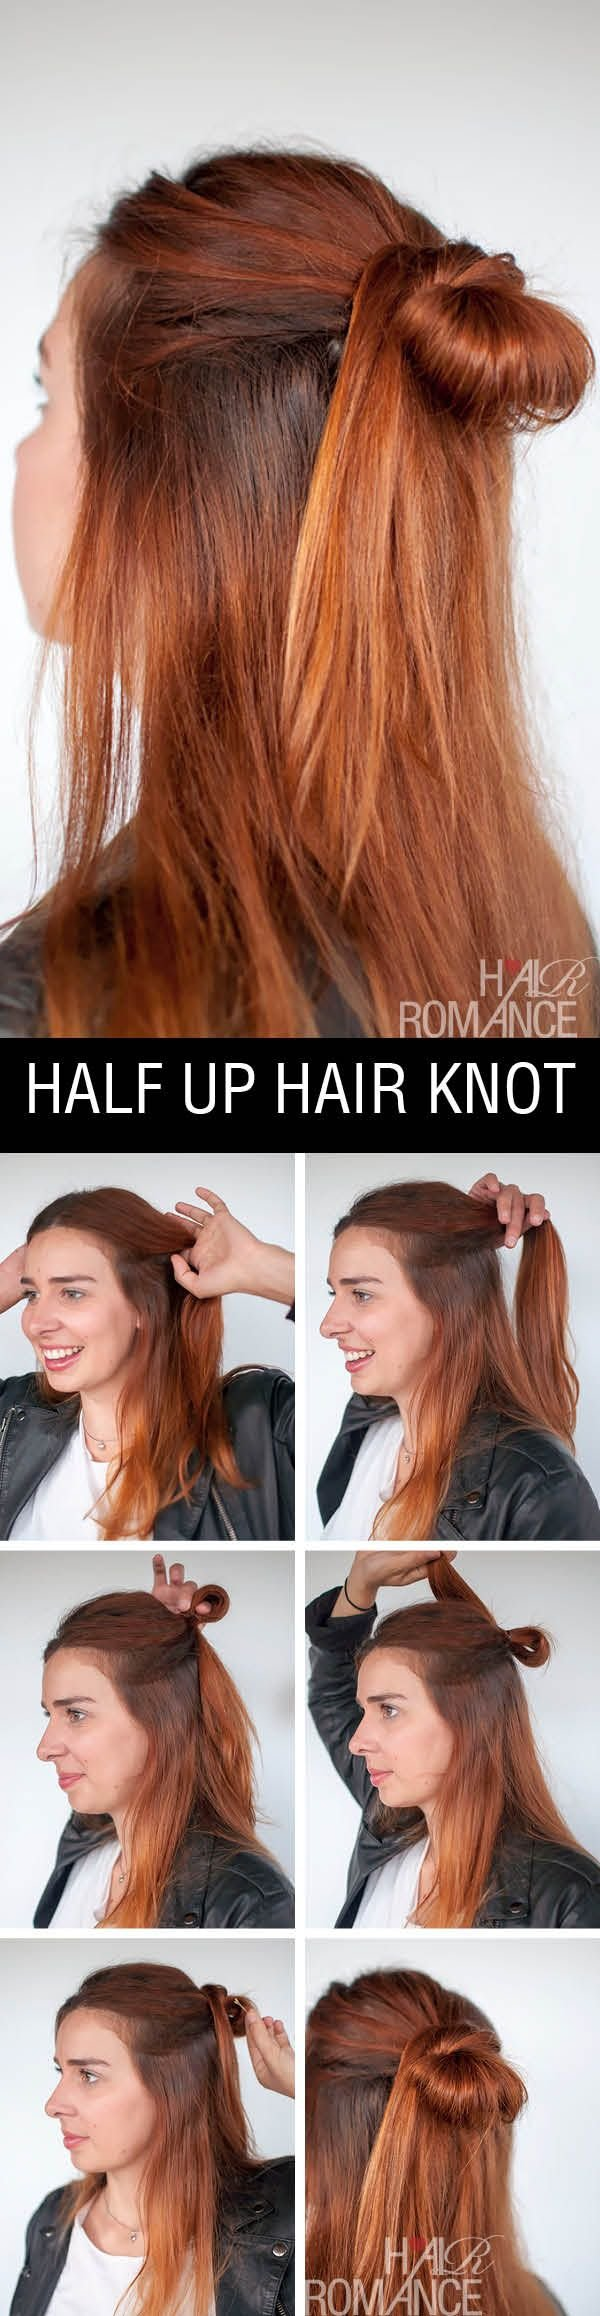 hair,brown,face,hairstyle,hair coloring,